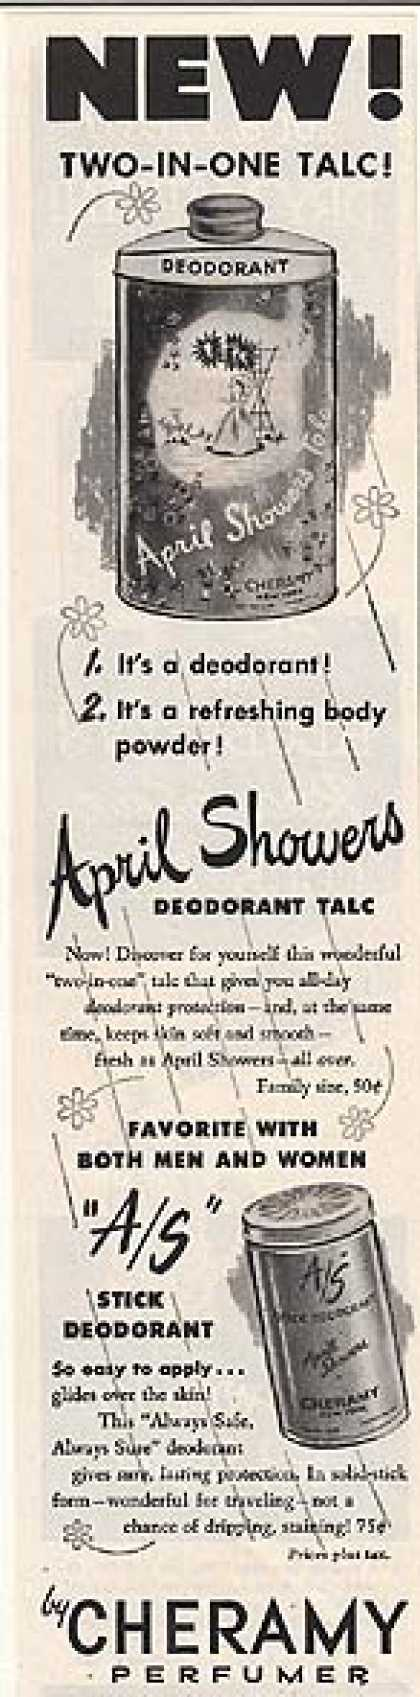 Cheramy's April Showers Deodorant Talc (1953)